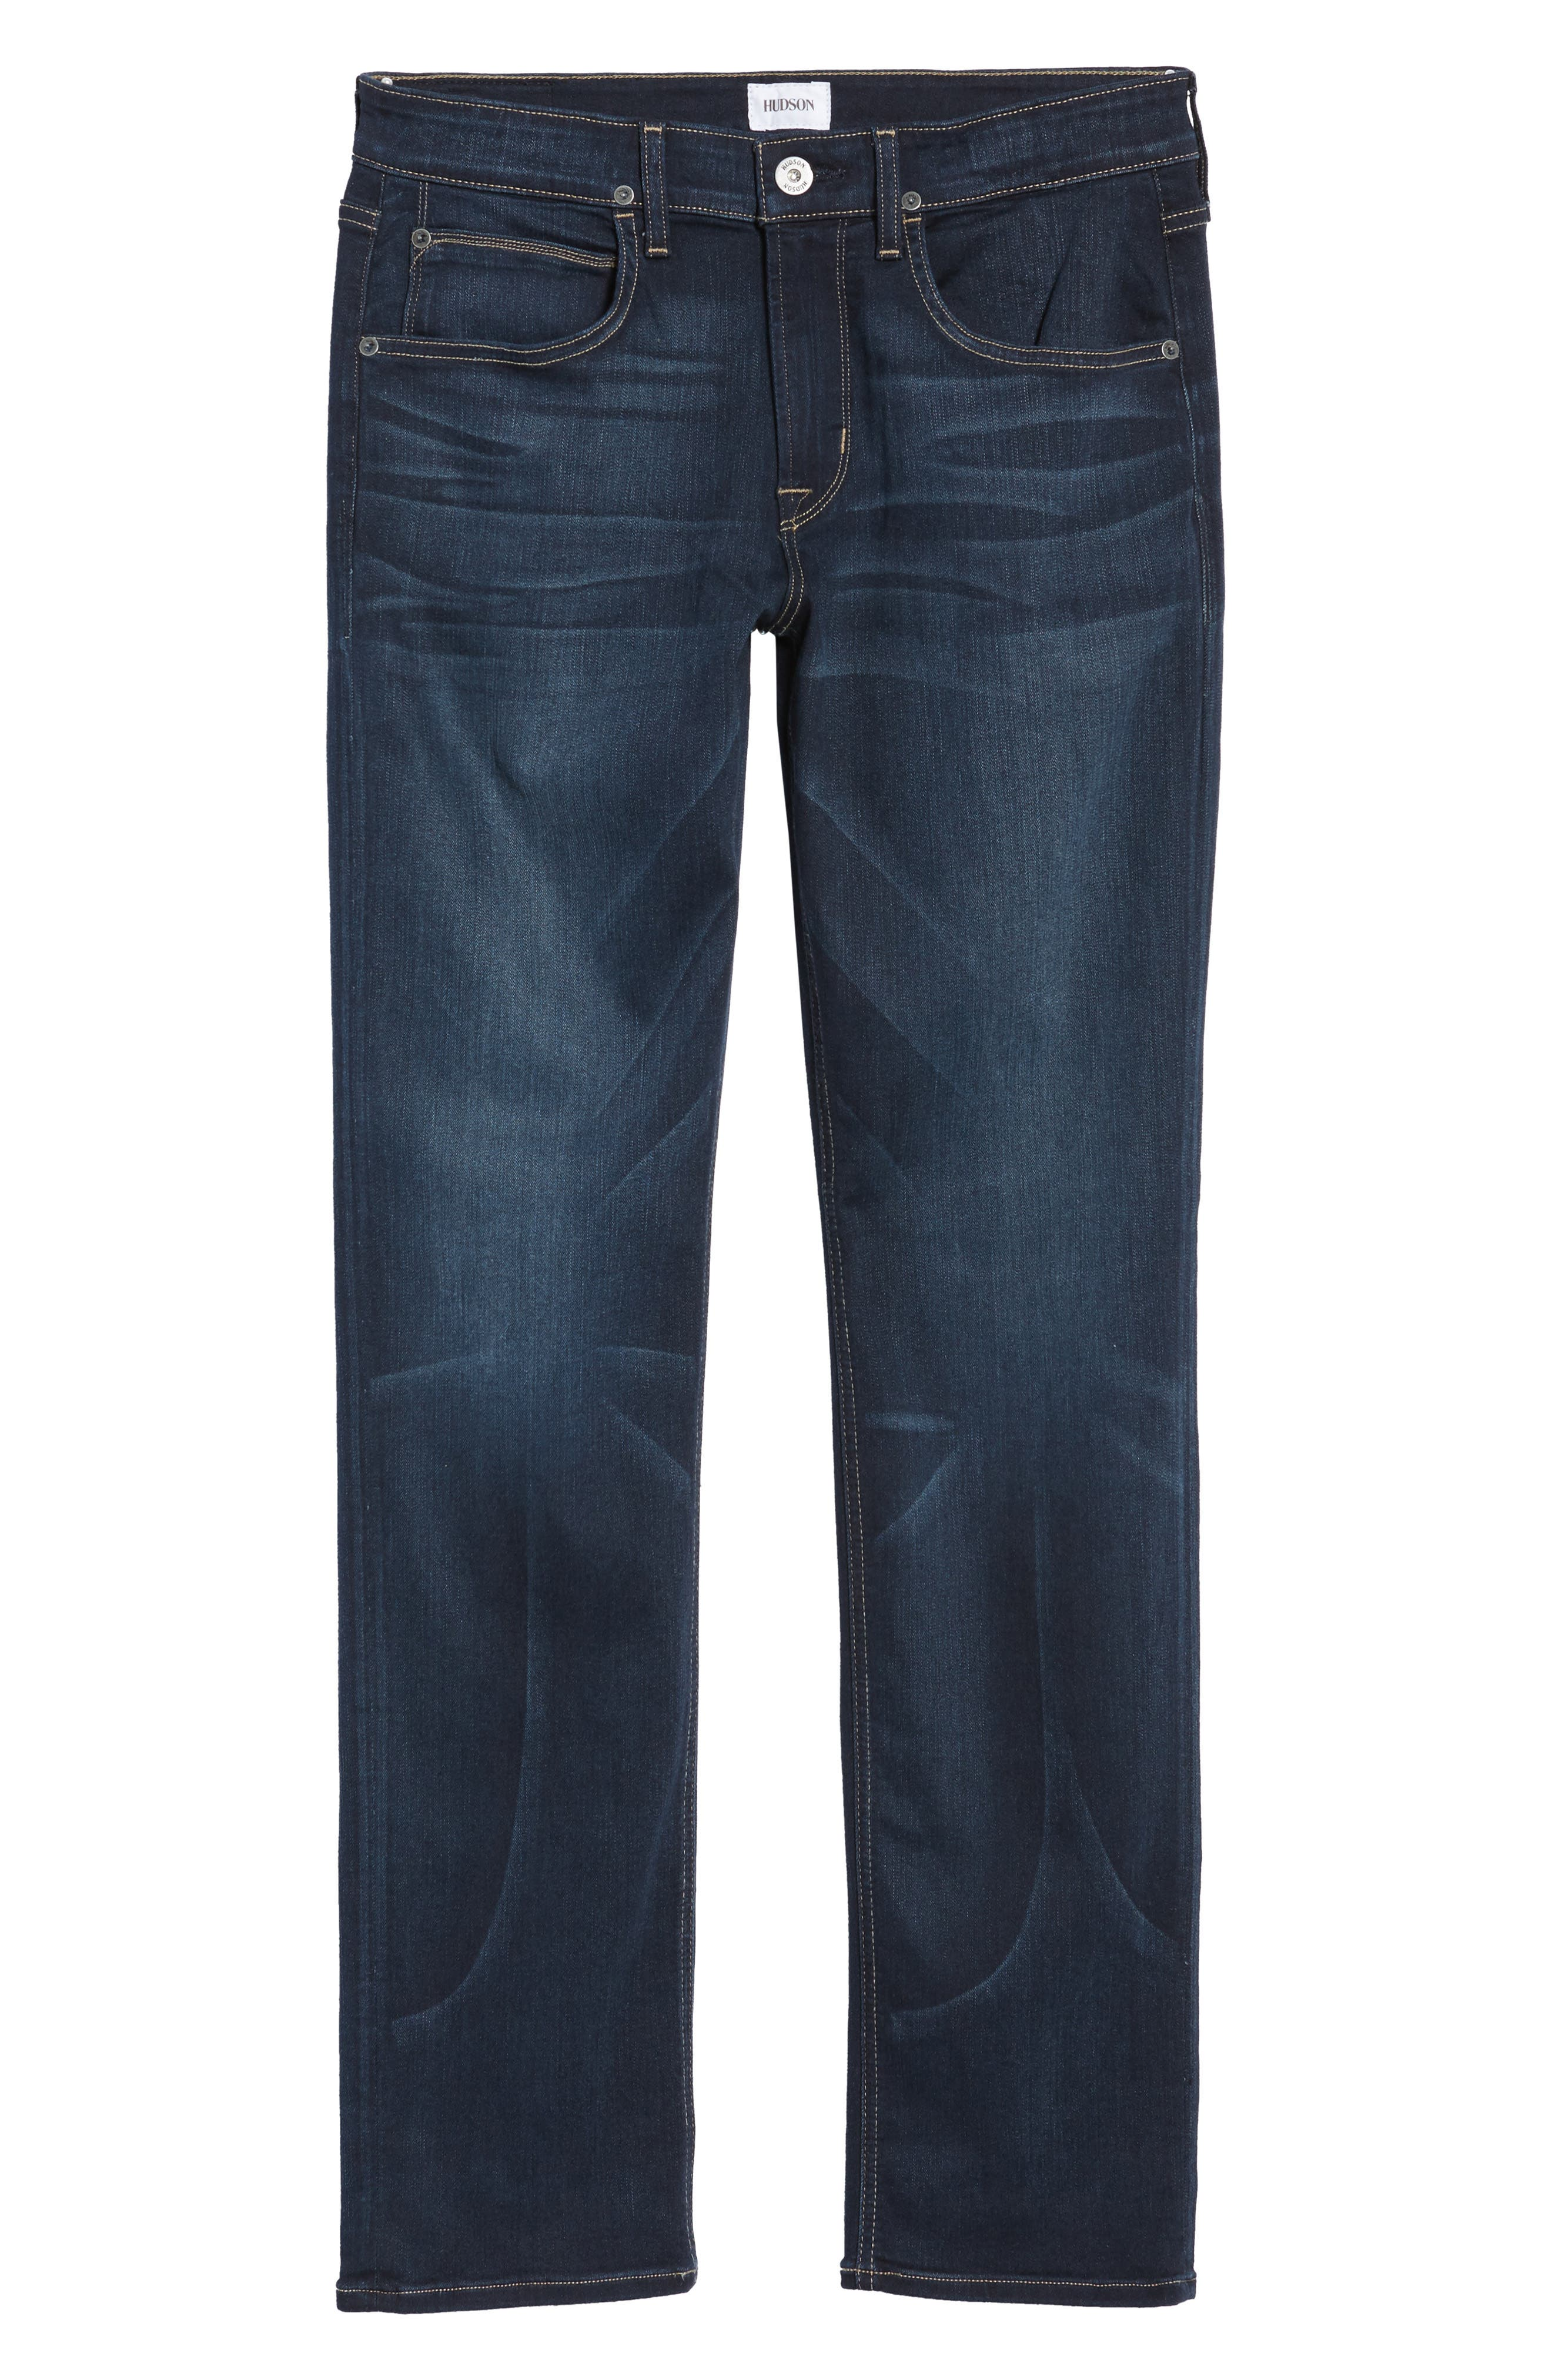 Byron Slim Straight Fit Jeans,                             Alternate thumbnail 6, color,